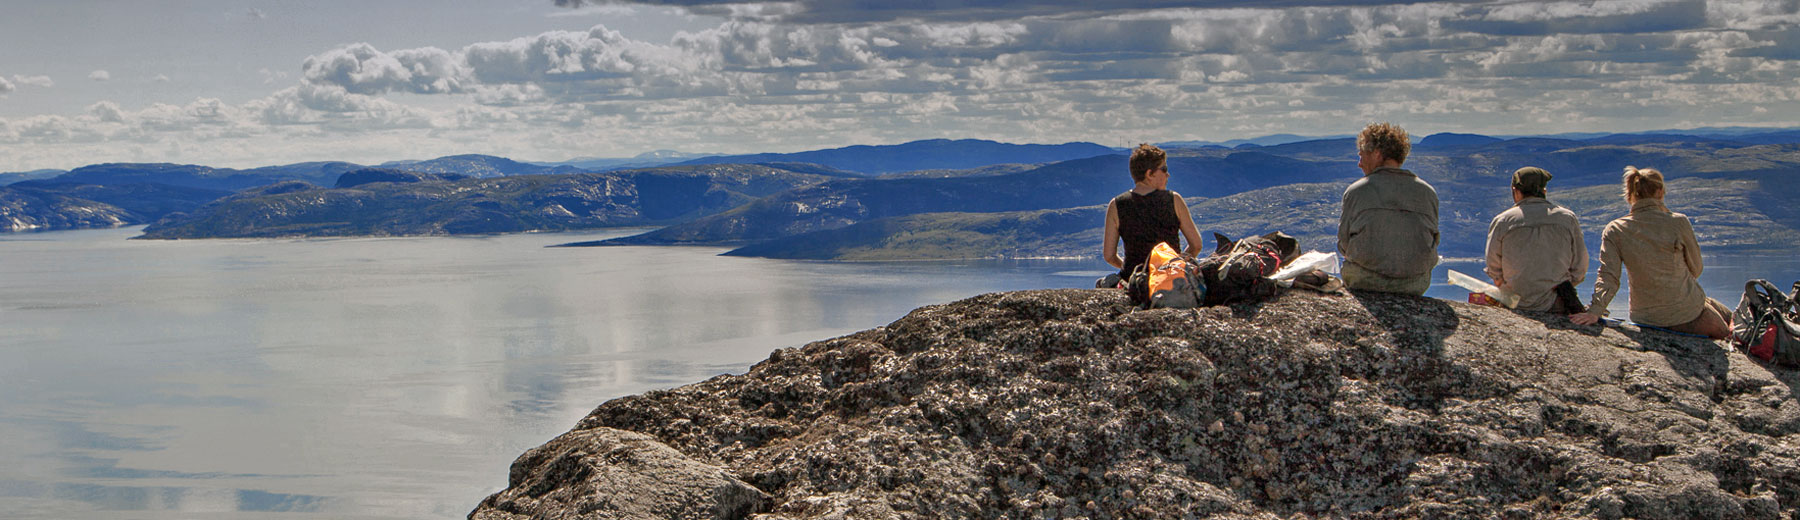 Taking in the view over Siugak Fjord, Labrador